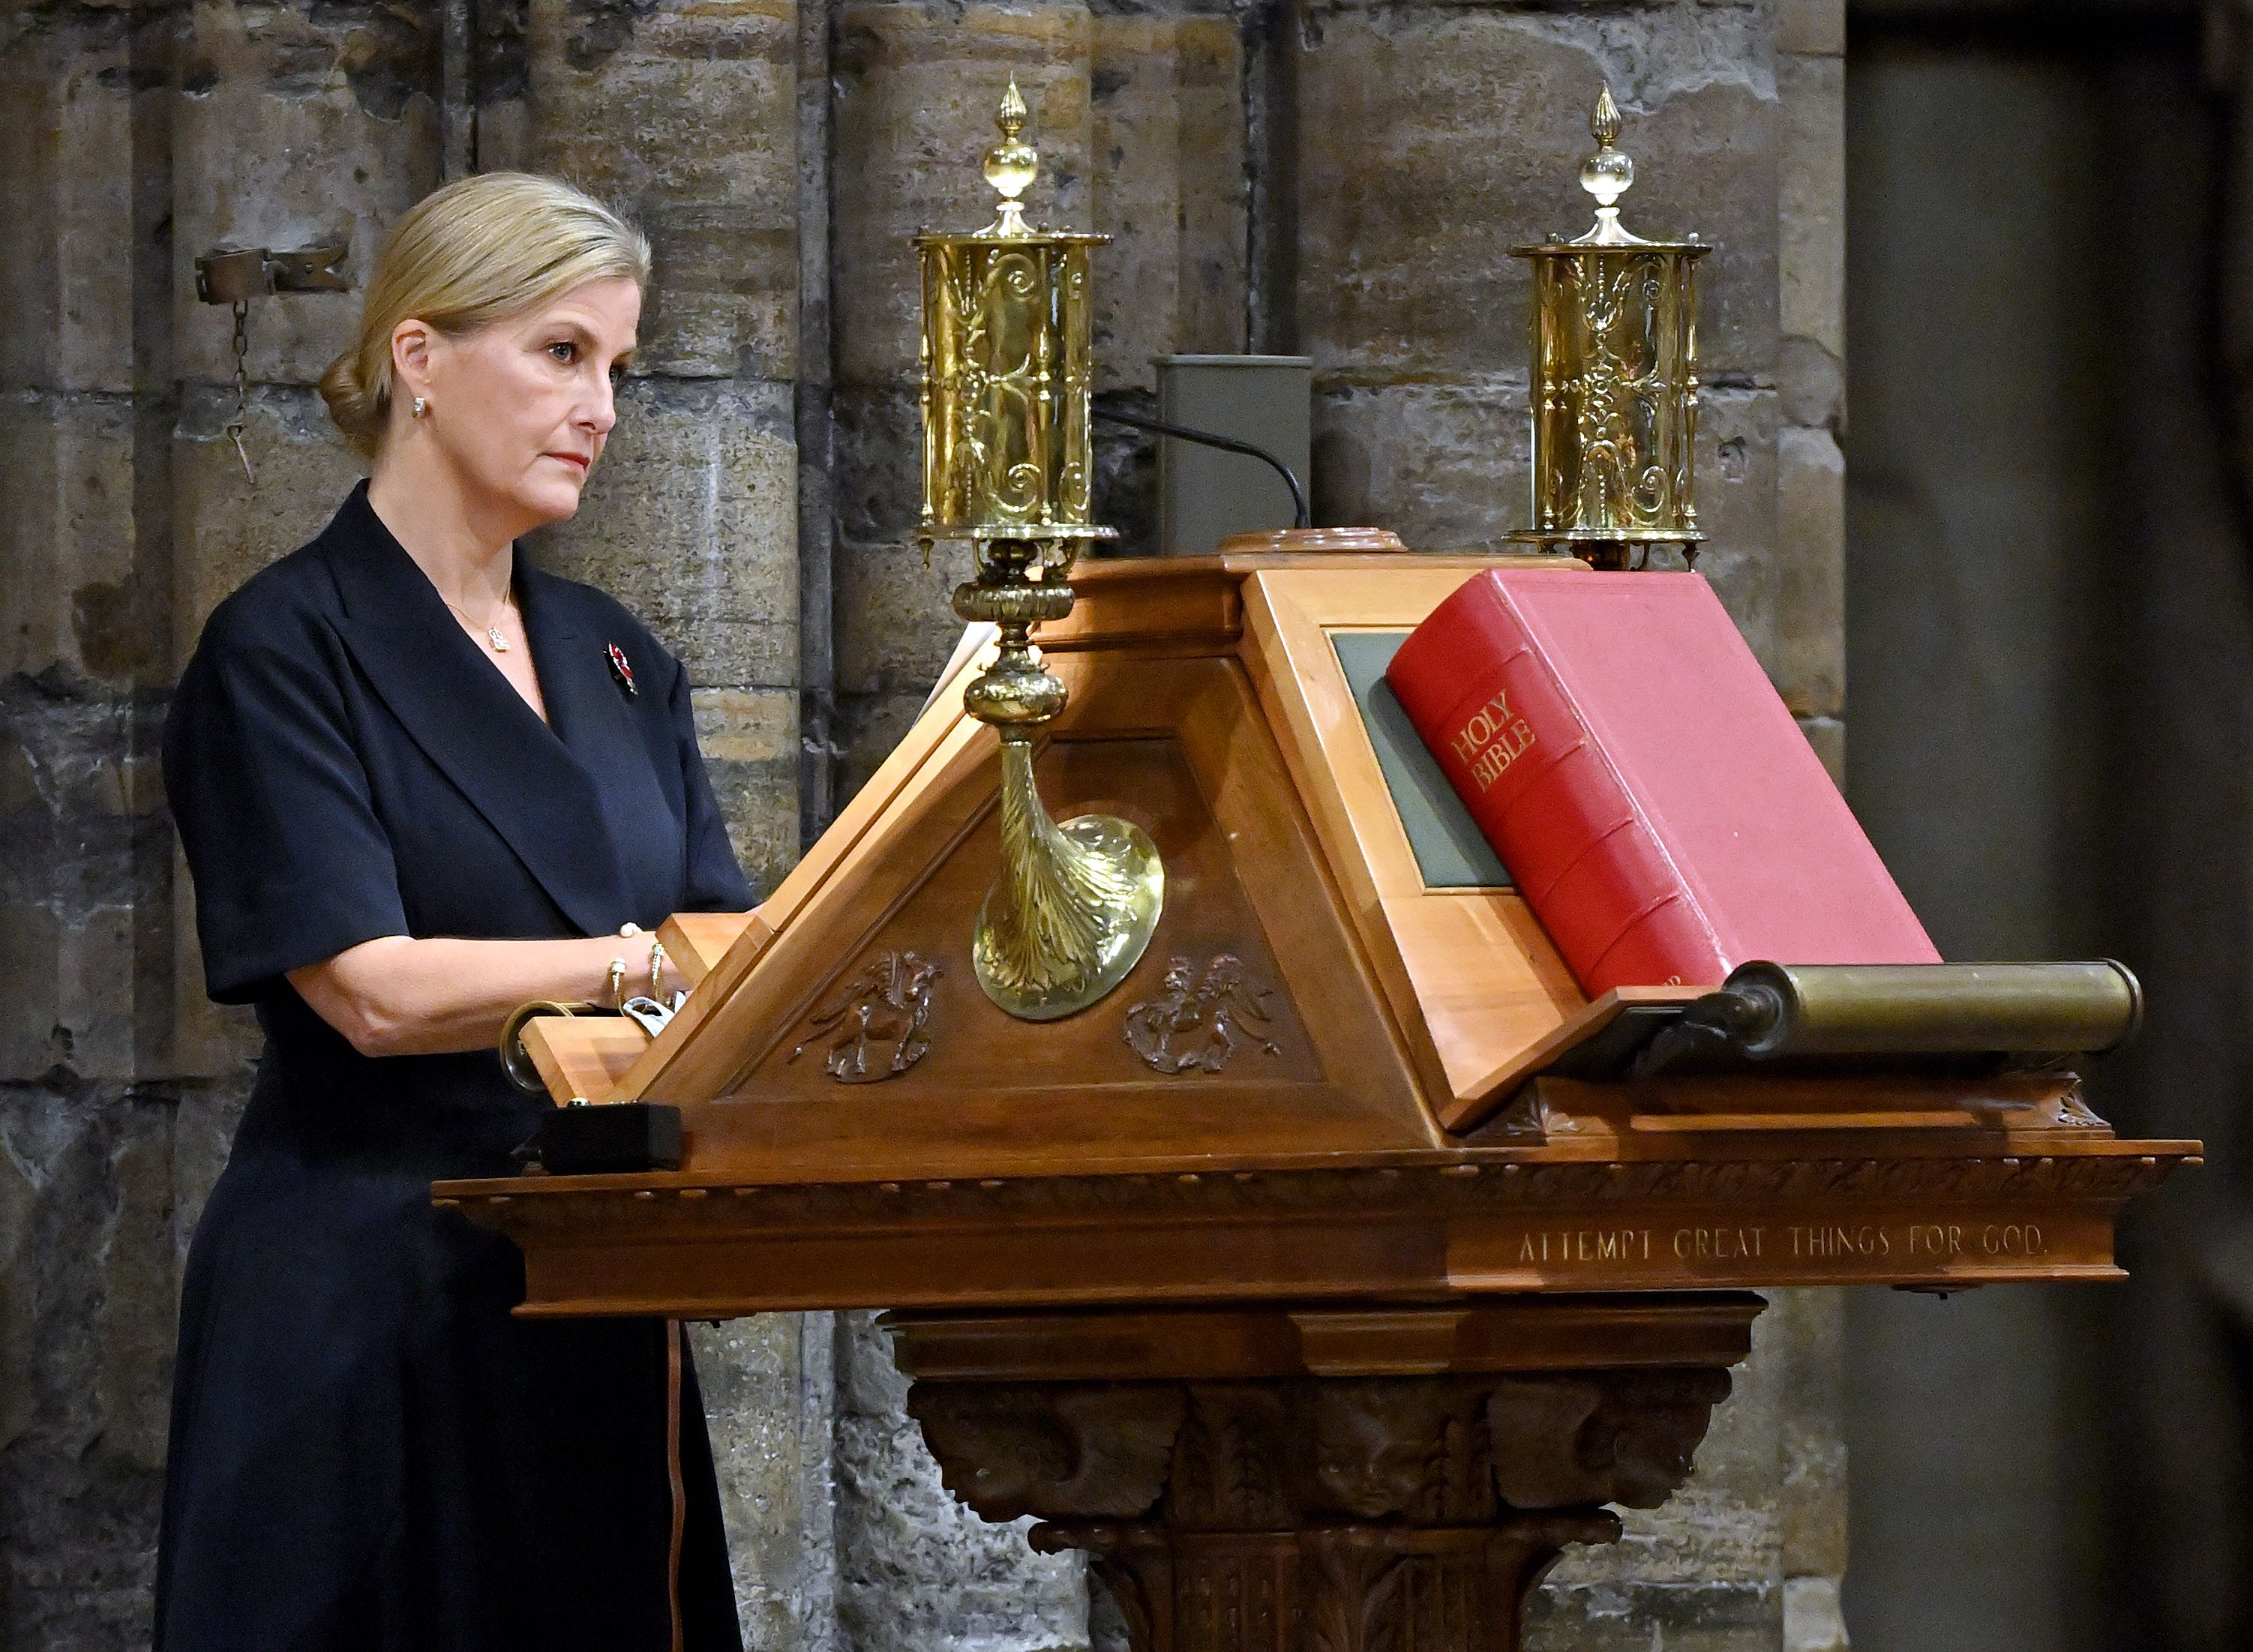 Sophie, Countess of Wessex attends the Sung Eucharist for All Souls' Day service at Westminster Abbey on November 2, 2020   Getty Image